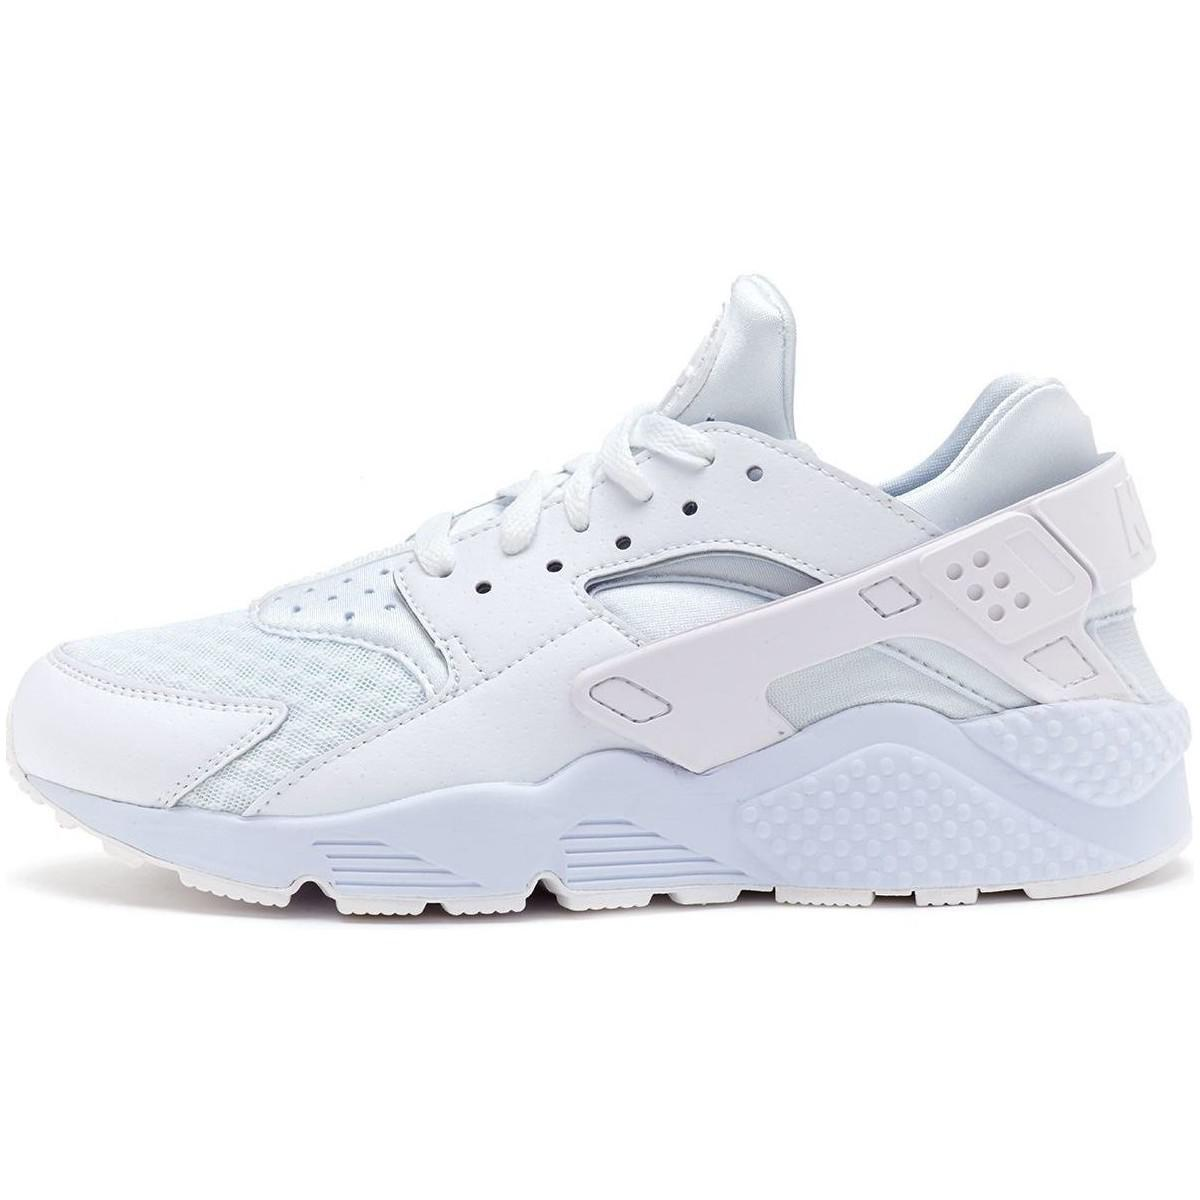 official photos 5d69f 072ef Nike. Air Huarache Trainers In White Pure Platinum 318429 111 Men s Shoes  ...